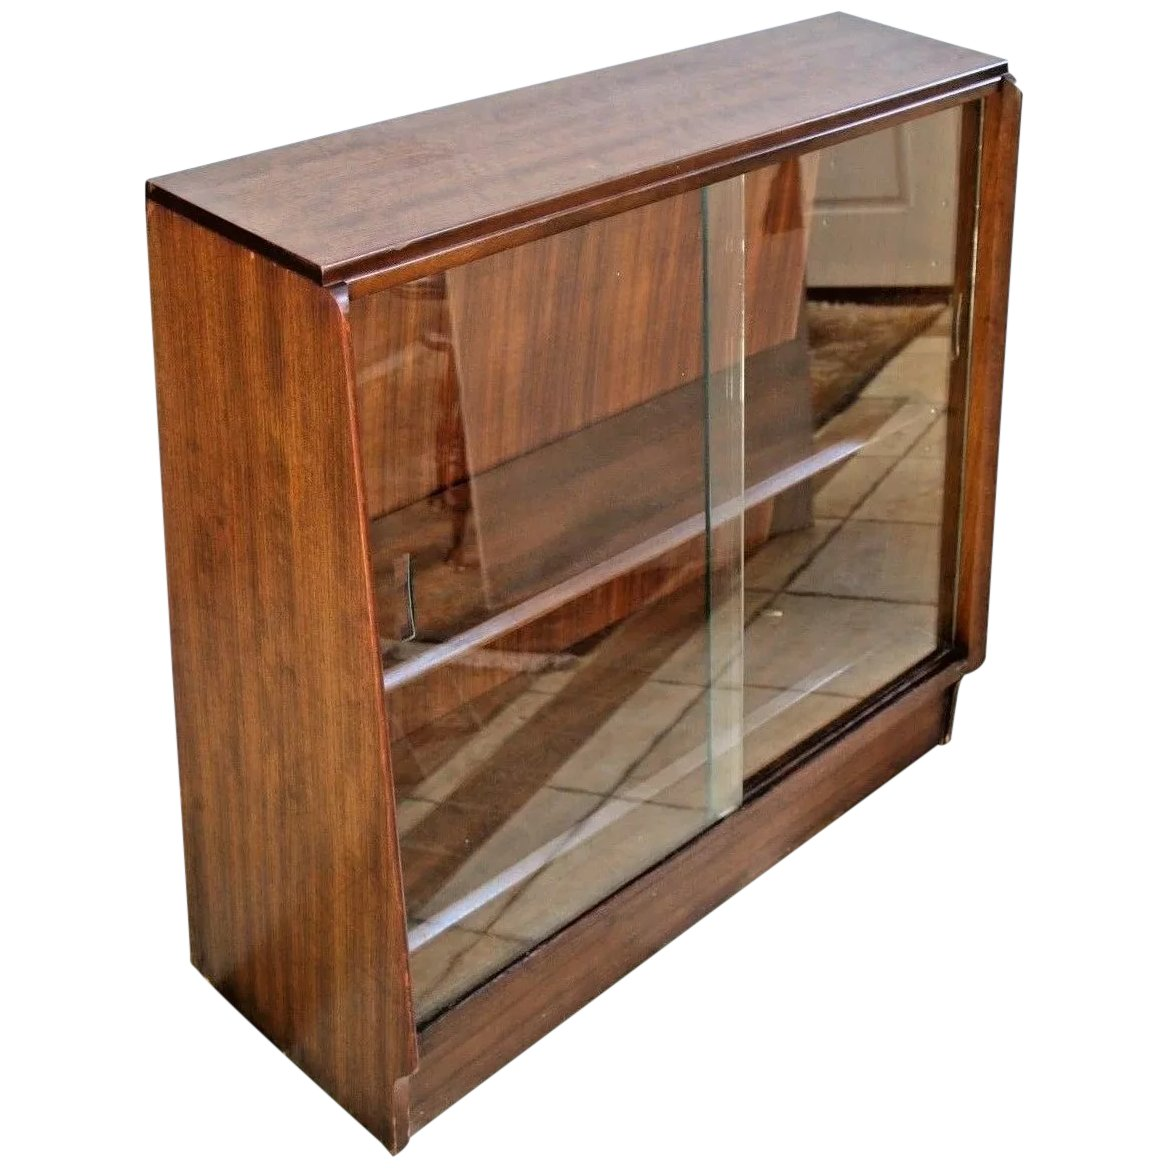 Mid Century Bookcase Two Shelves Glass Sliding Doors Solid Walnut Construction